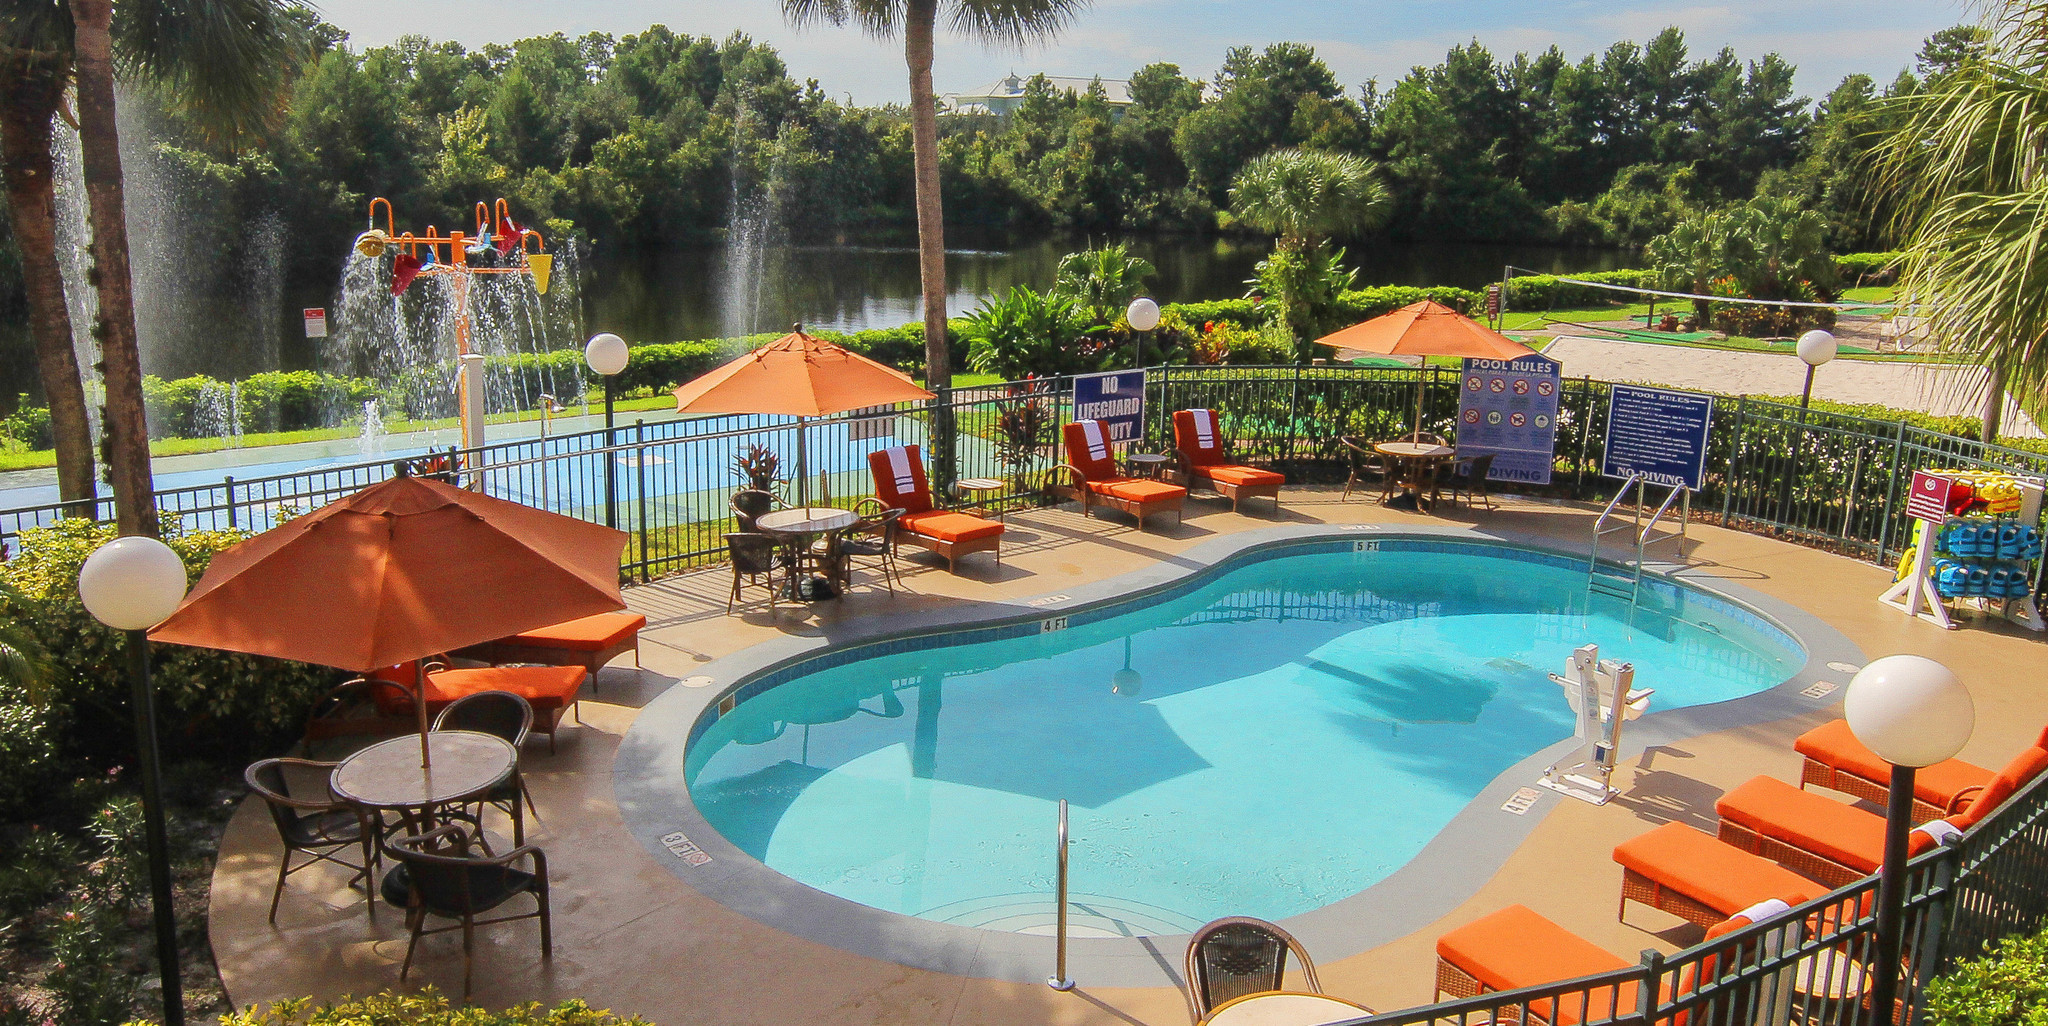 Heated Outdoor Pool With Poolside Tables And Lounge Chairs Westgate Leisure Resort